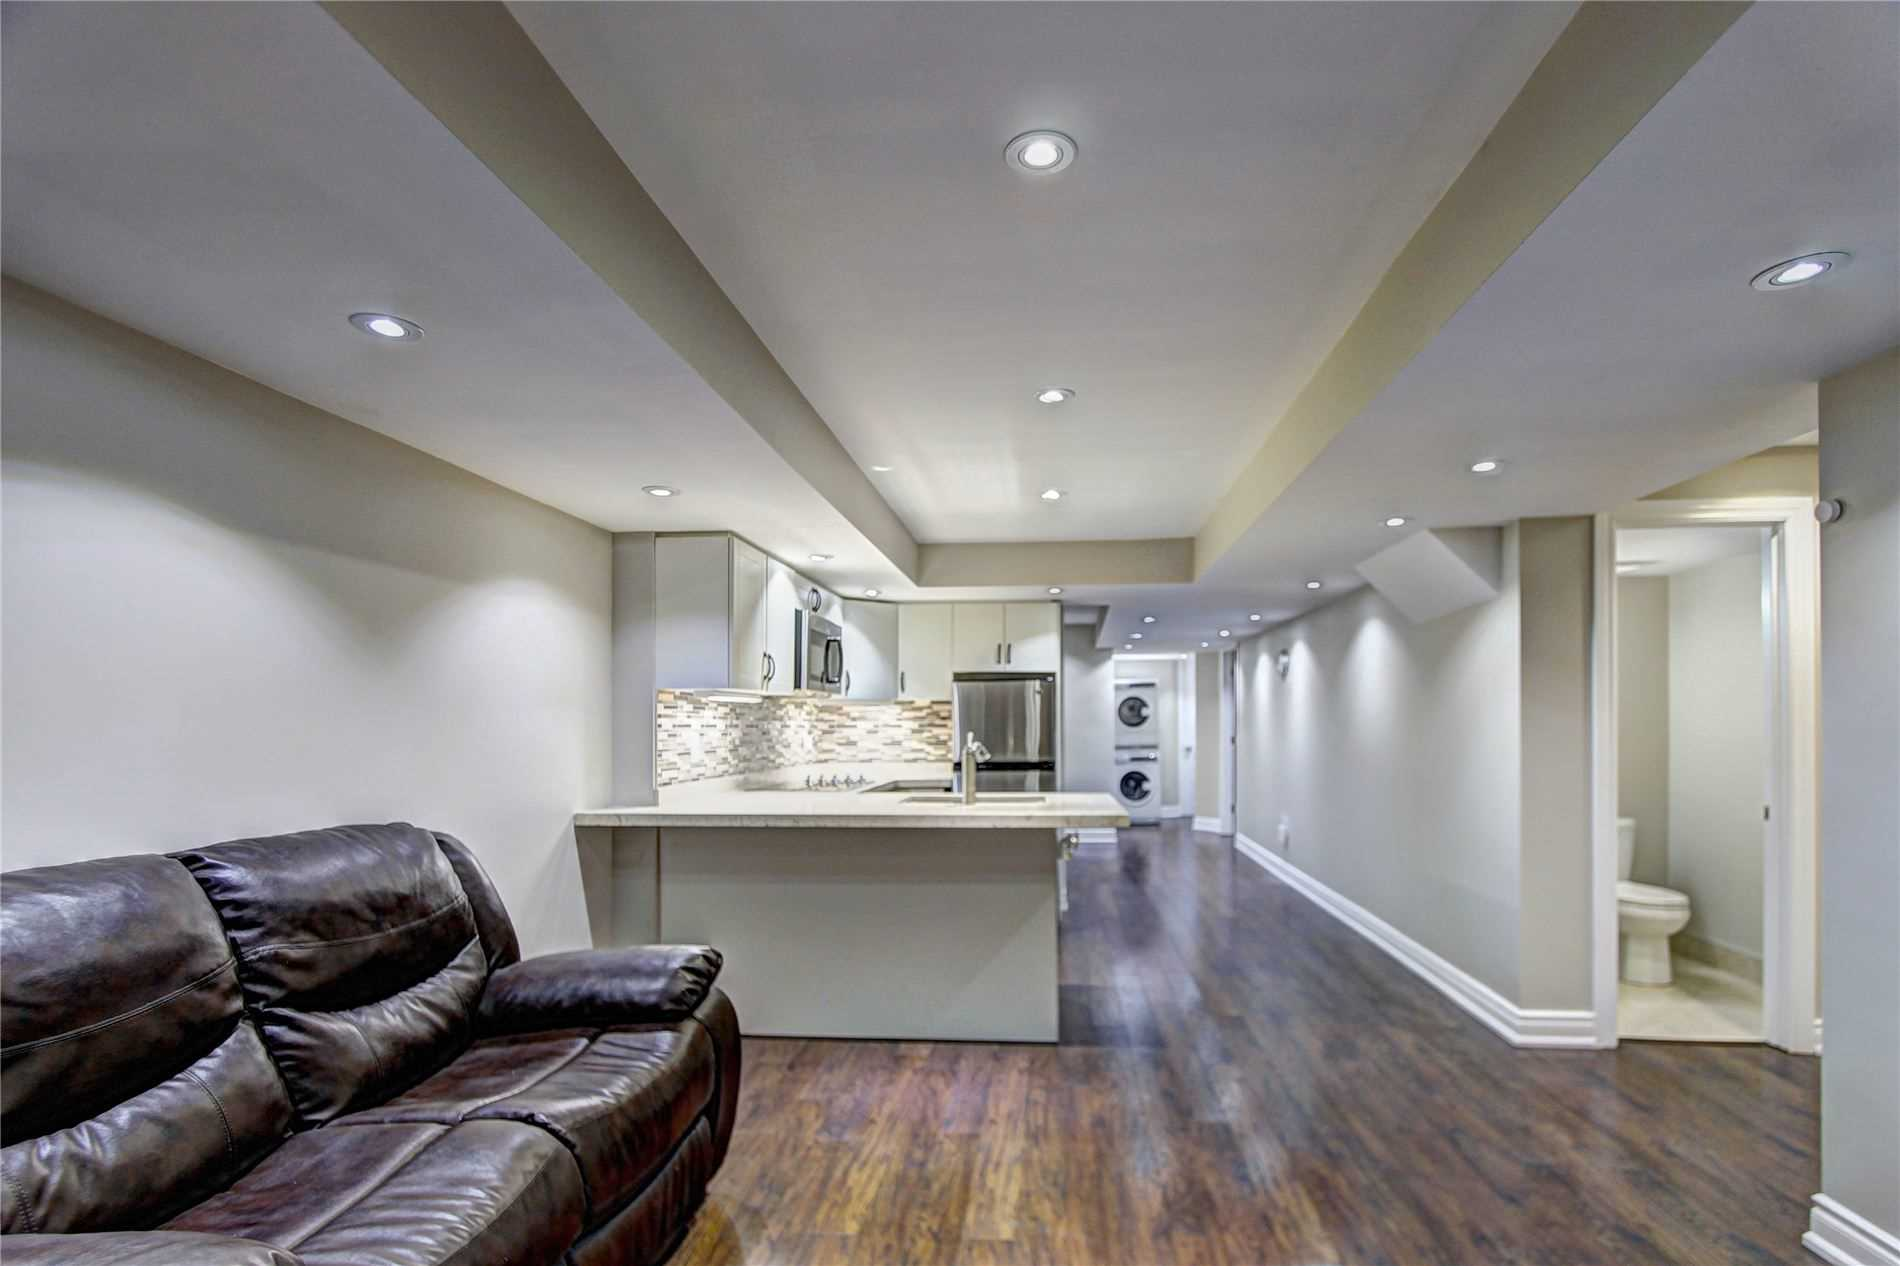 Detached house For Lease In Mississauga - 6393 Seaver Rd, Mississauga, Ontario, Canada L5V2J2 , 2 Bedrooms Bedrooms, ,2 BathroomsBathrooms,Detached,For Lease,(Lower),Seaver